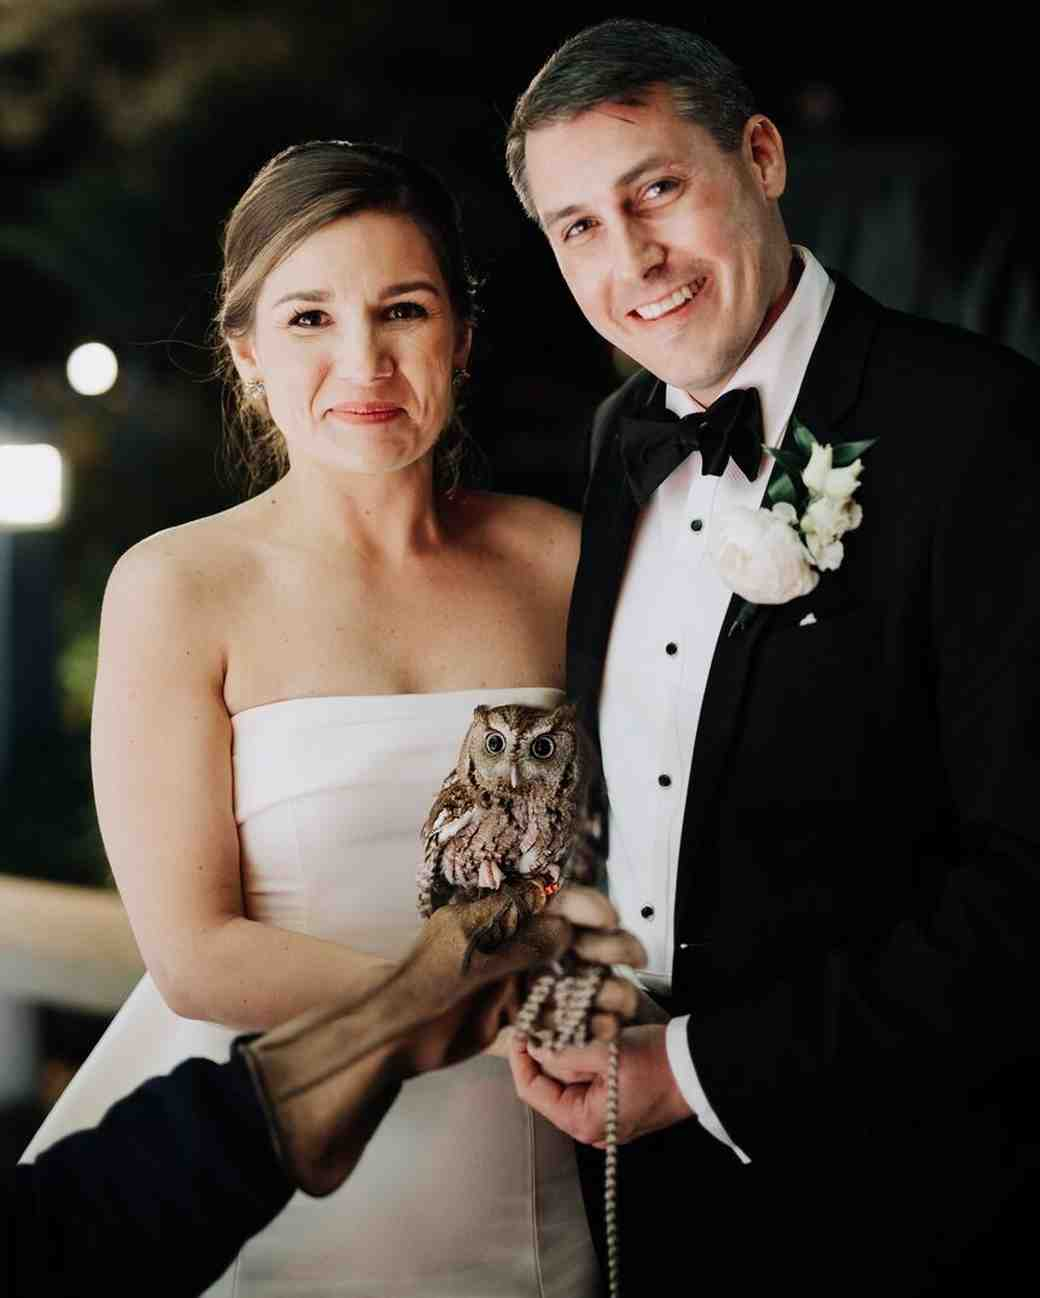 cathleen and winston wedding bride and groom posing with owl